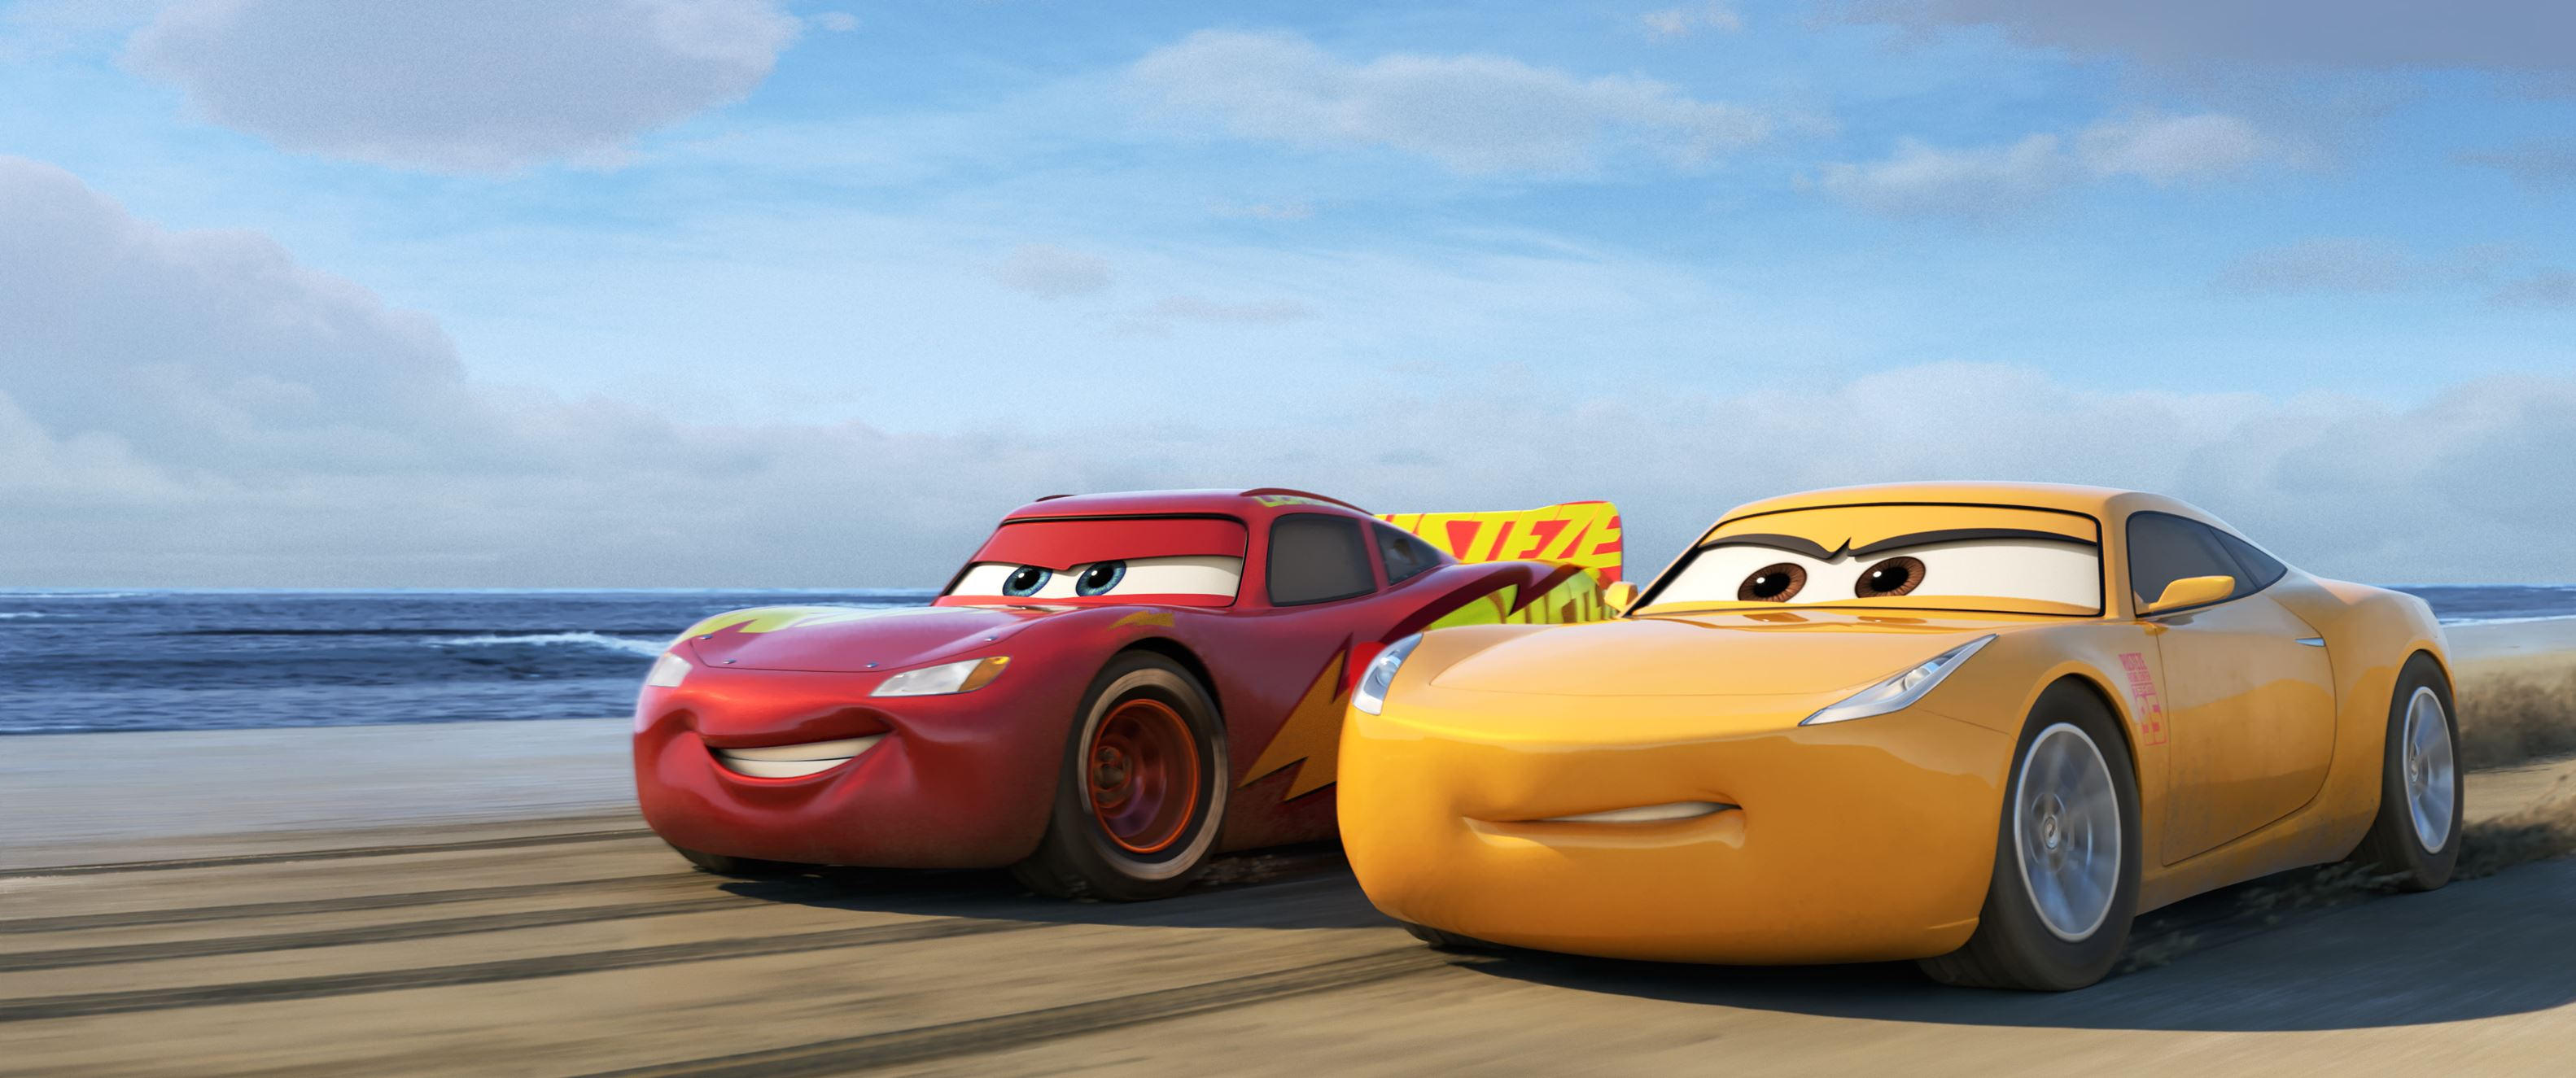 New Cars 3 Poster And Trailer Movies For Kids